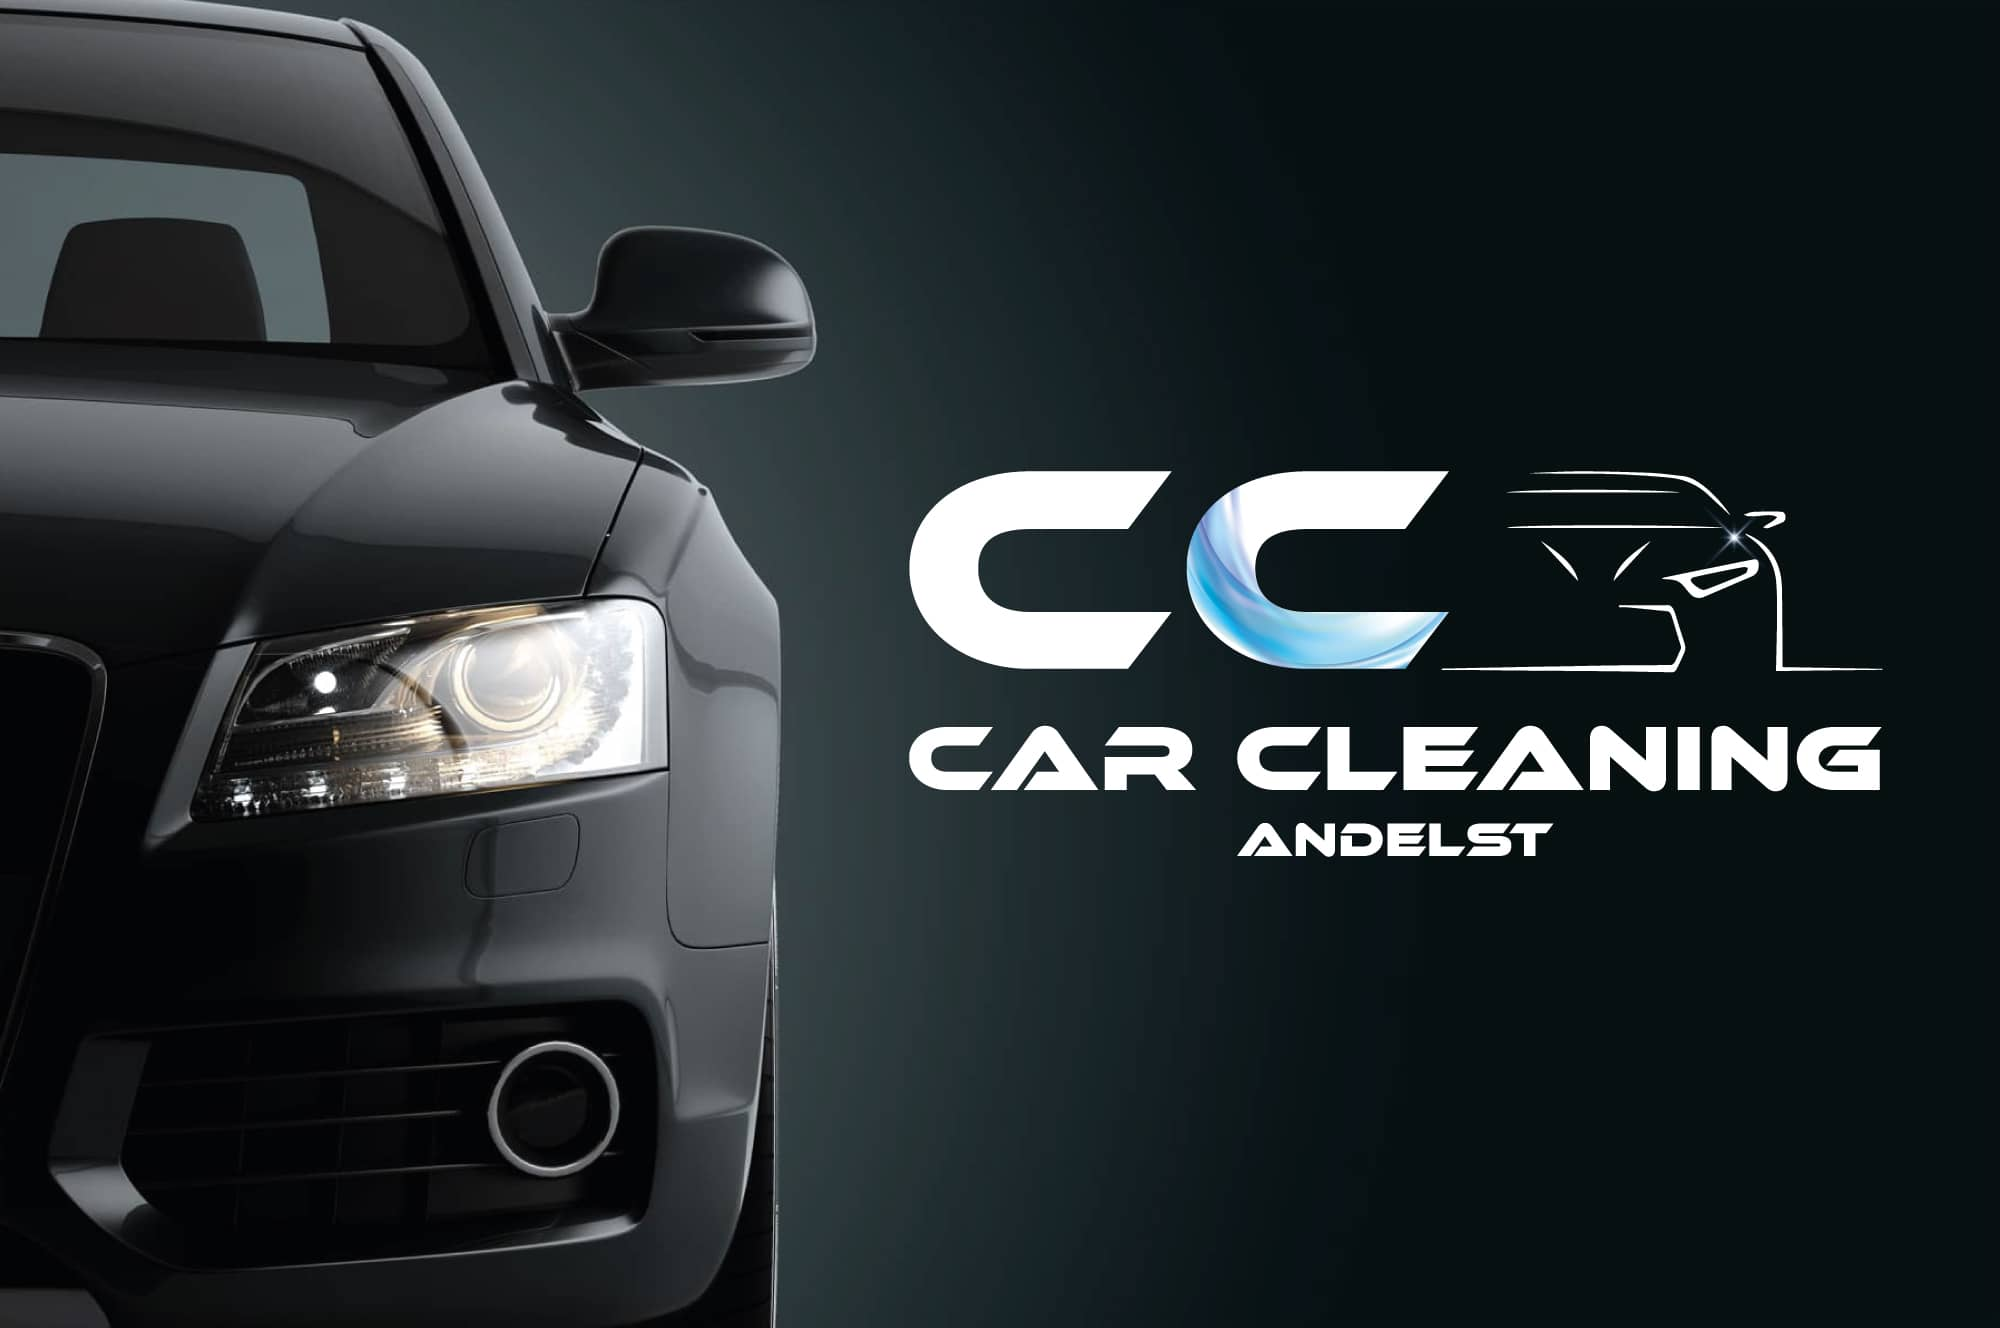 Car Cleaning Andelst